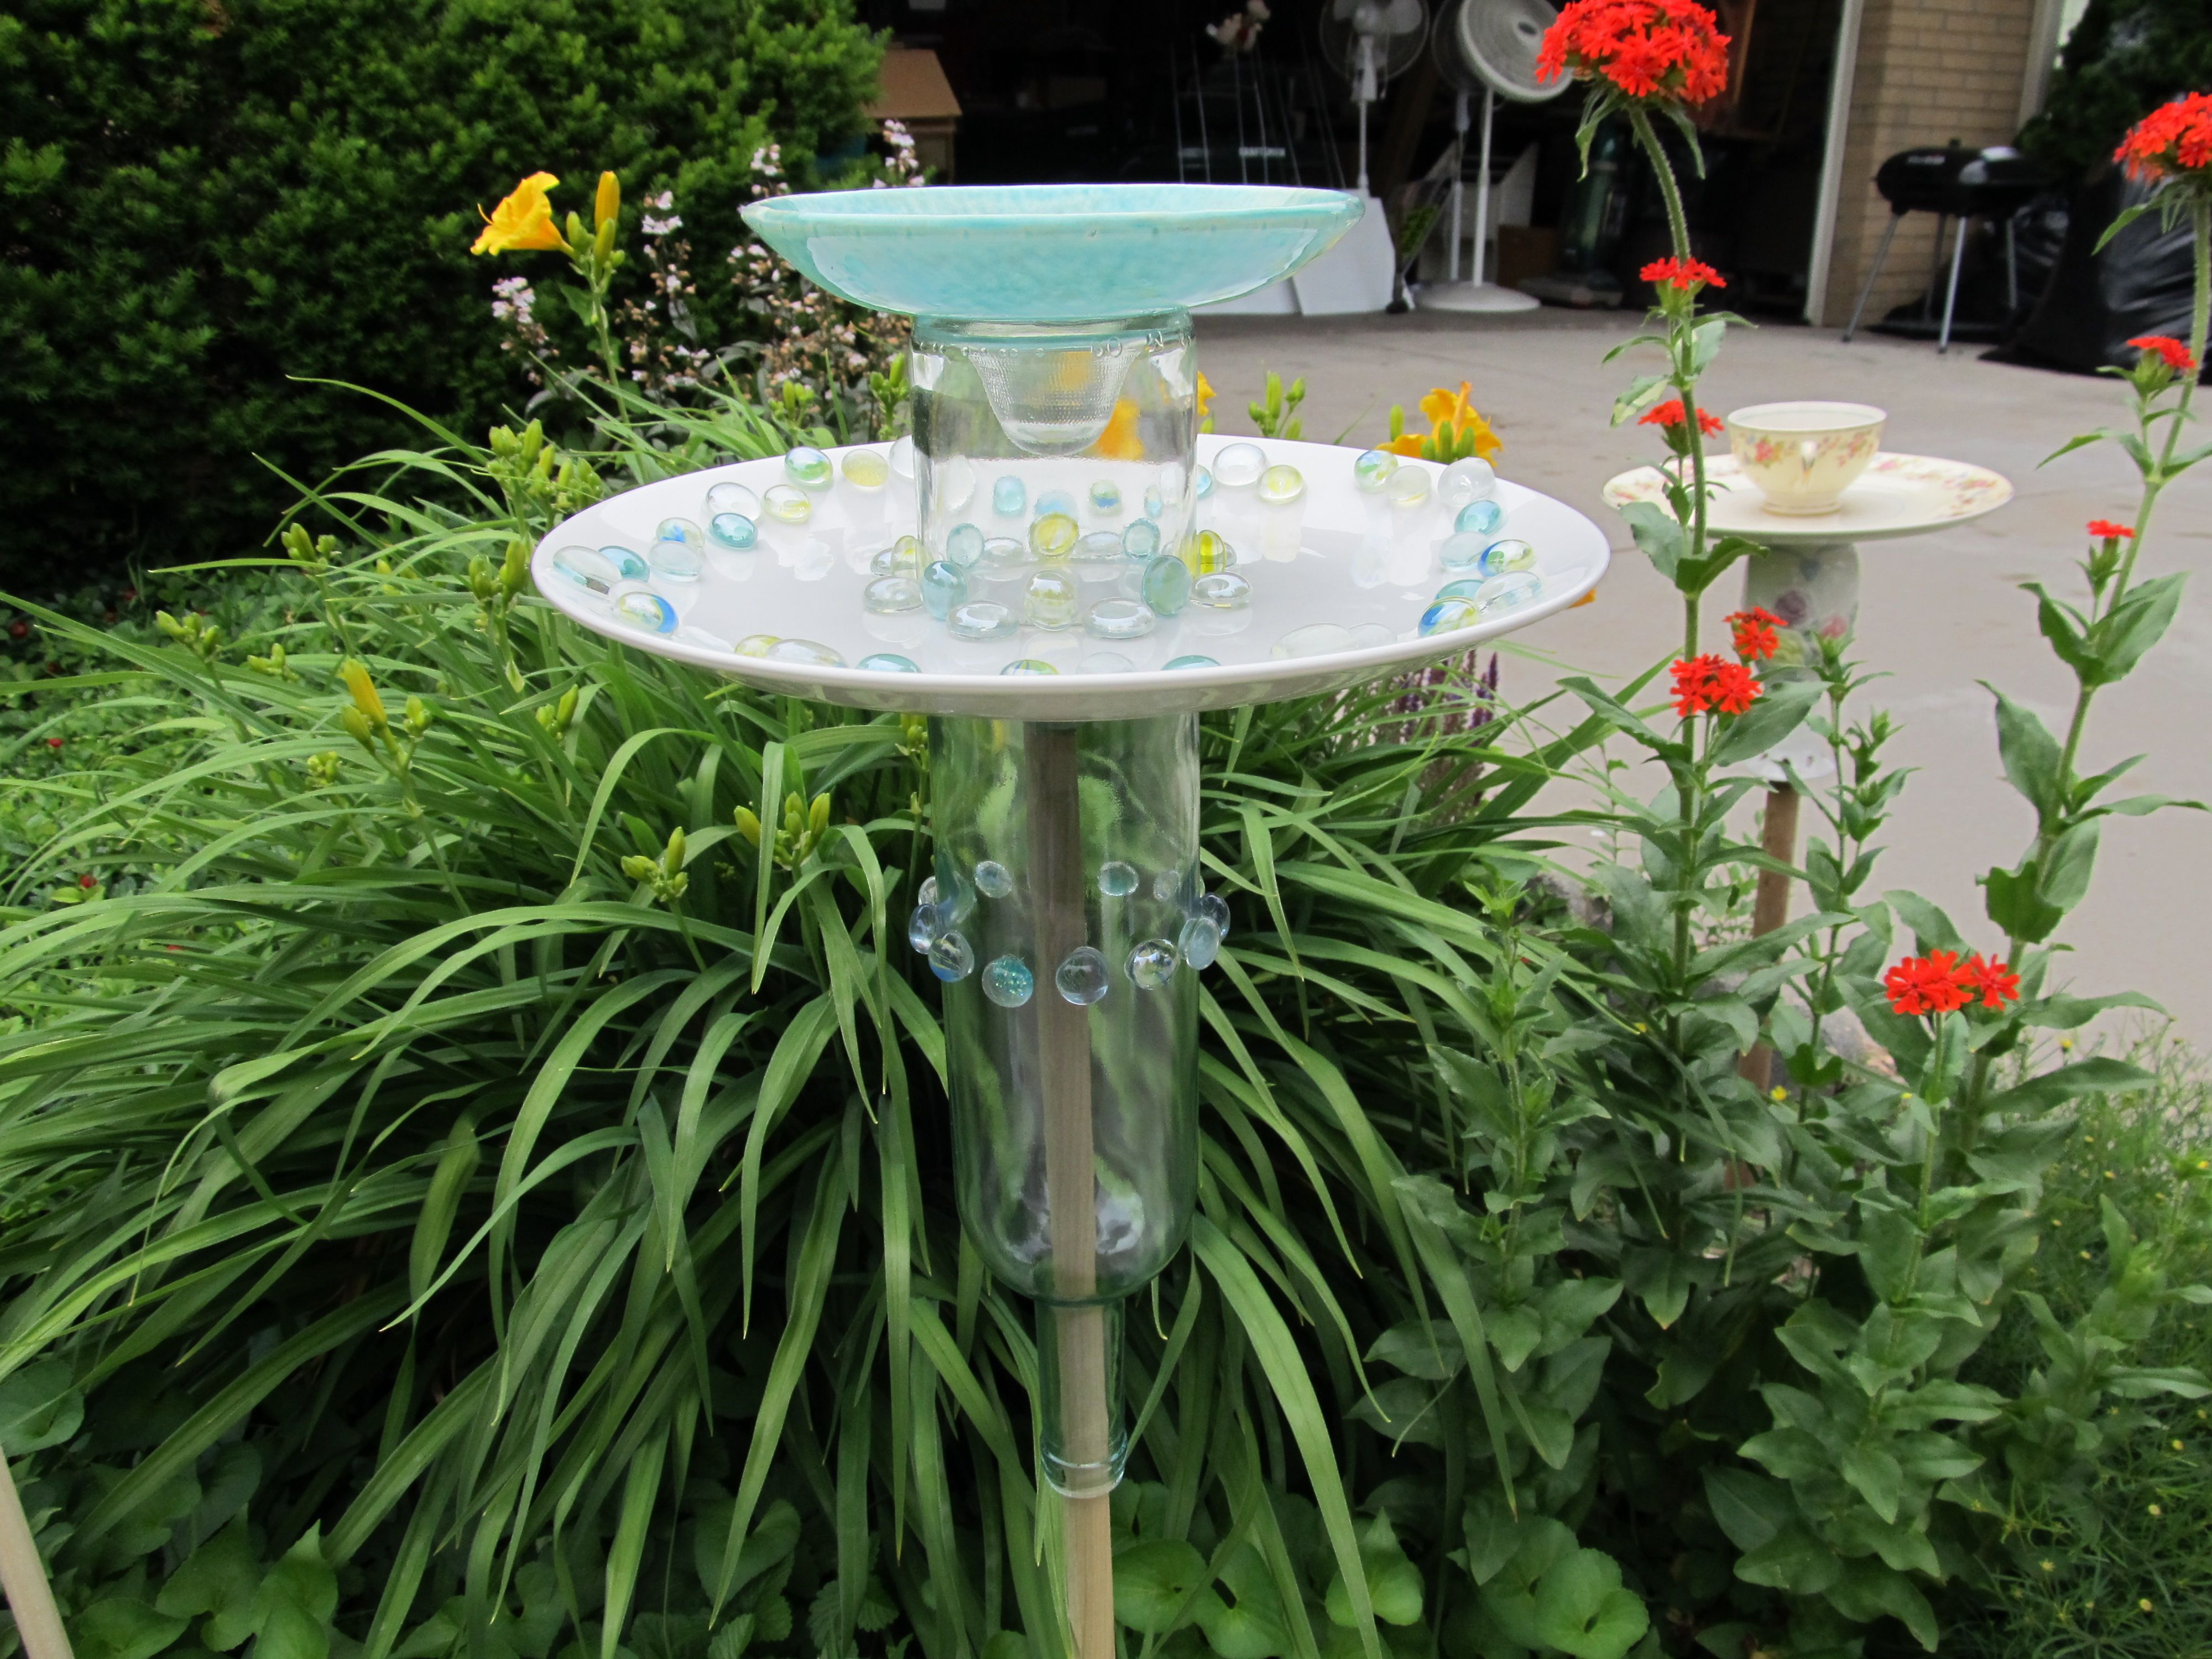 Make Garden Art With Old Dishes Part Of Estate 6 16 17